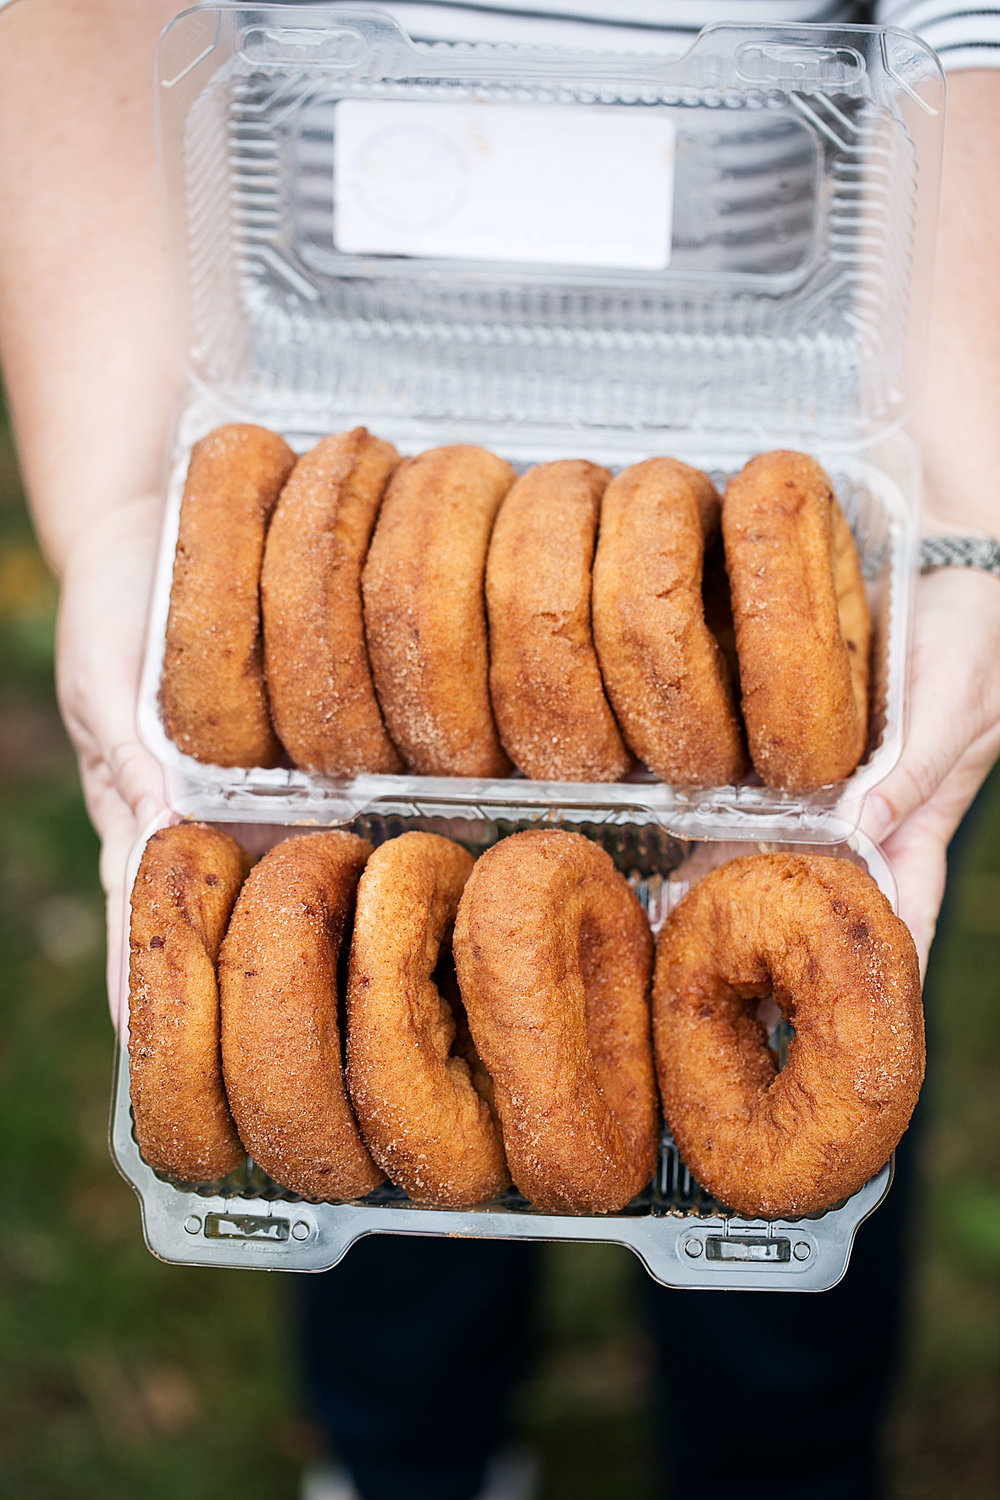 apple cider donuts alstedes farm chester, nj